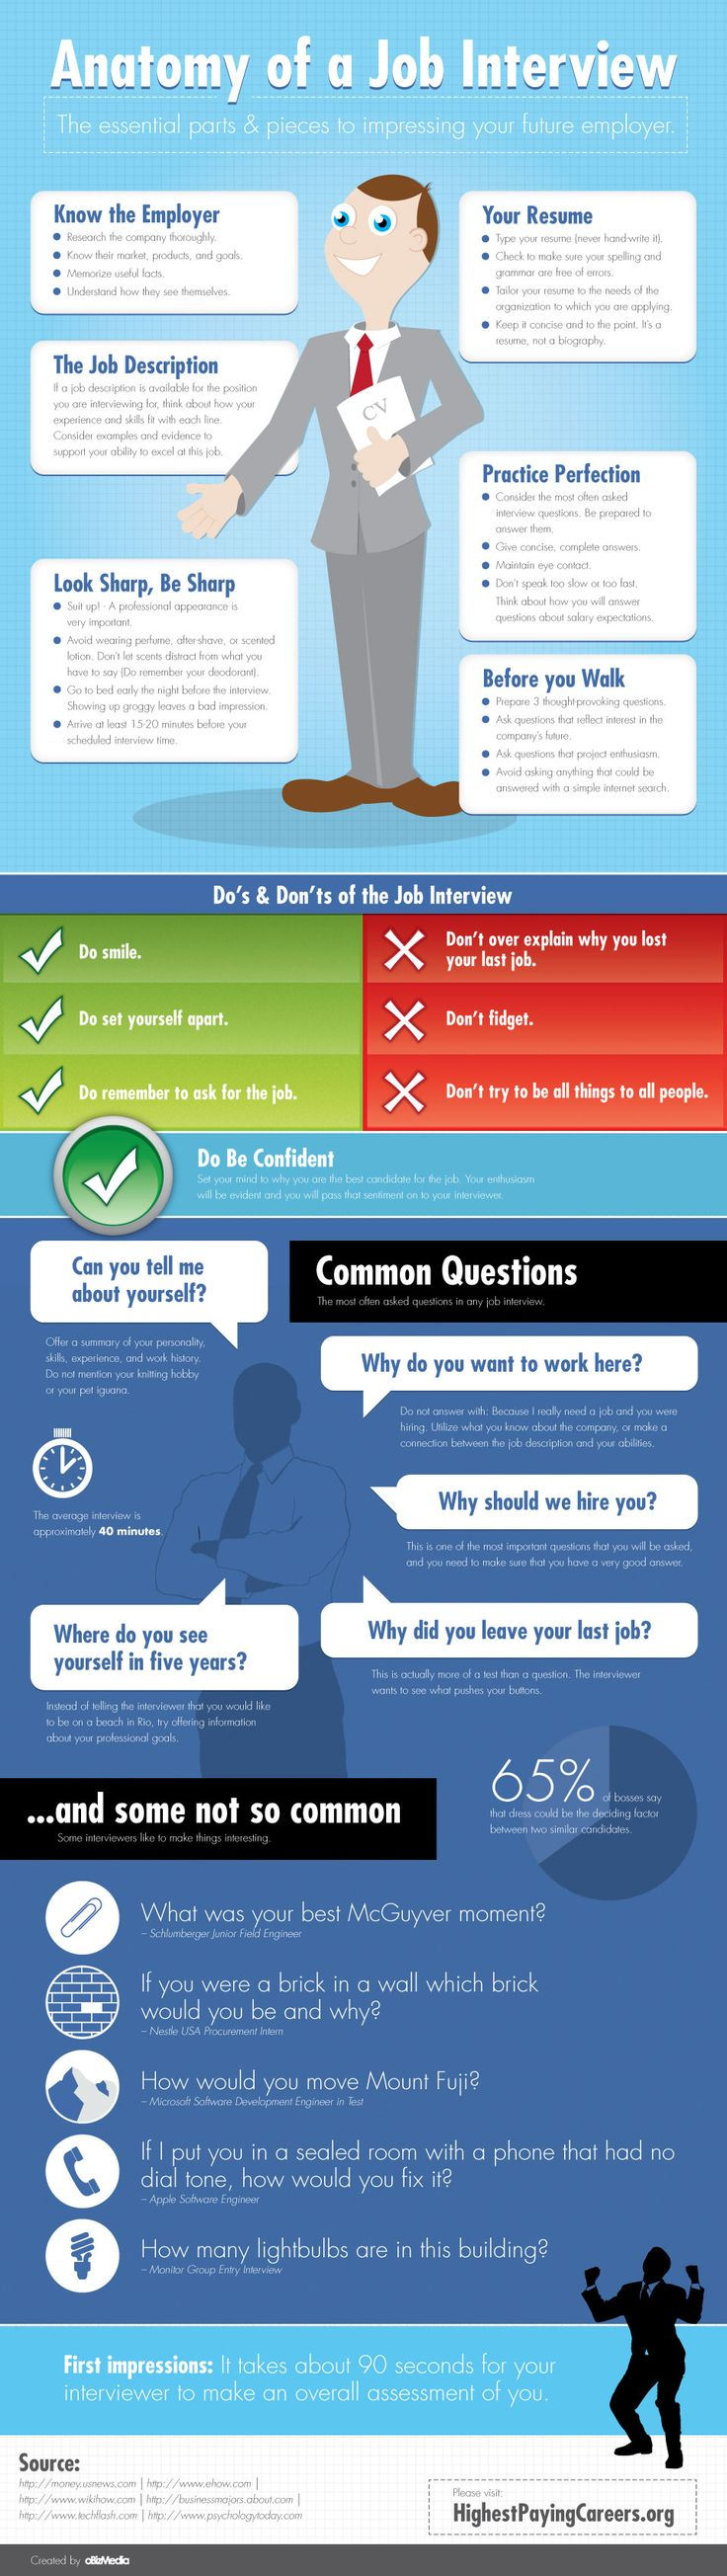 best images about dominate that job interview anatomy of a job interview the essential parts pieces to impressing your future imployer